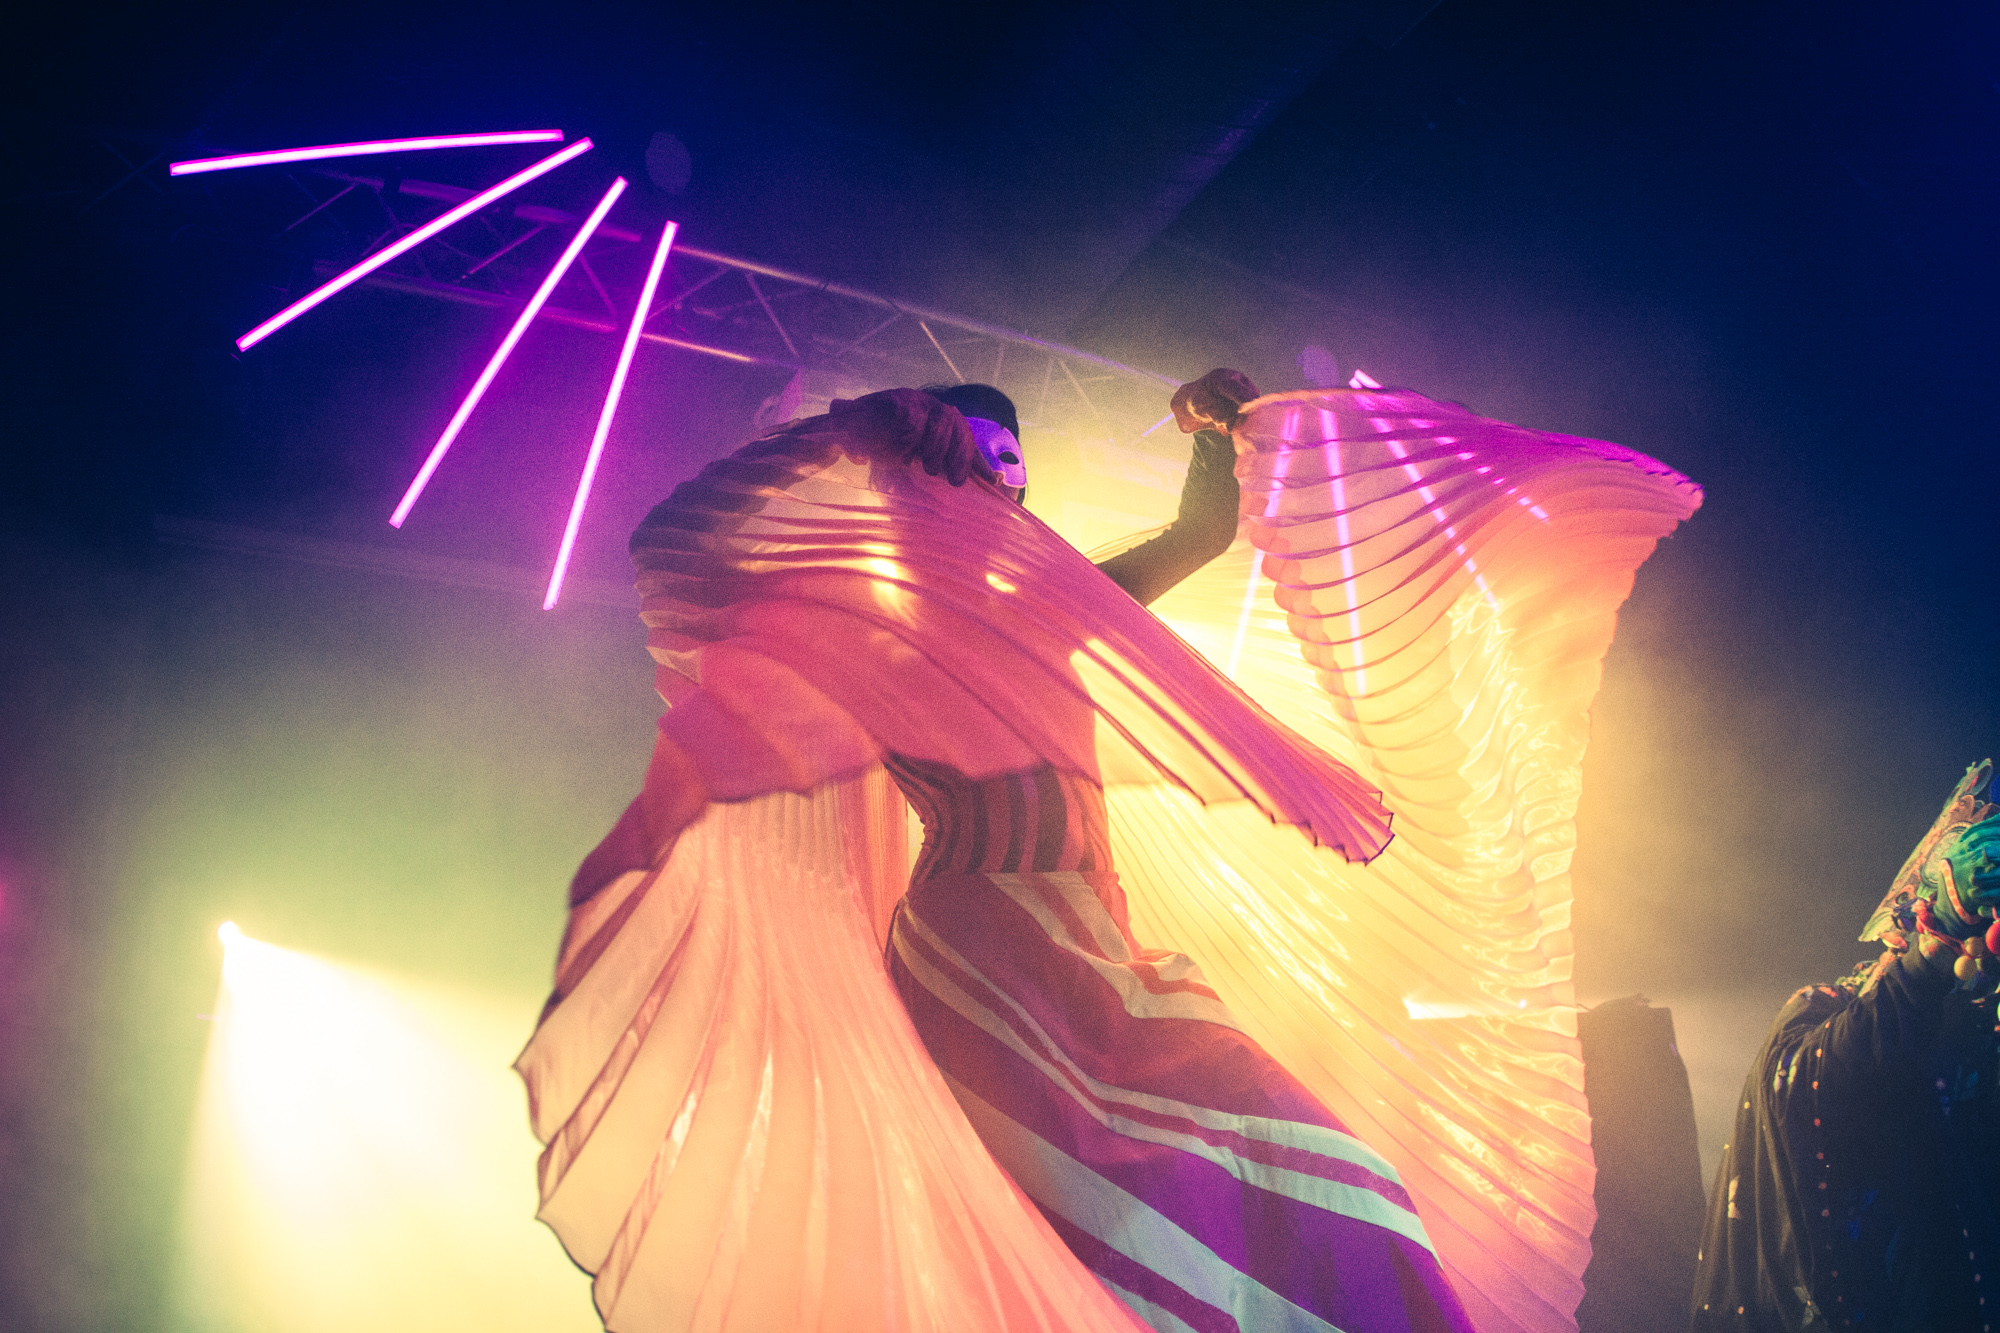 2010.04.14_CRB_Shpongle&ArcheDream_IMG_4299.jpg